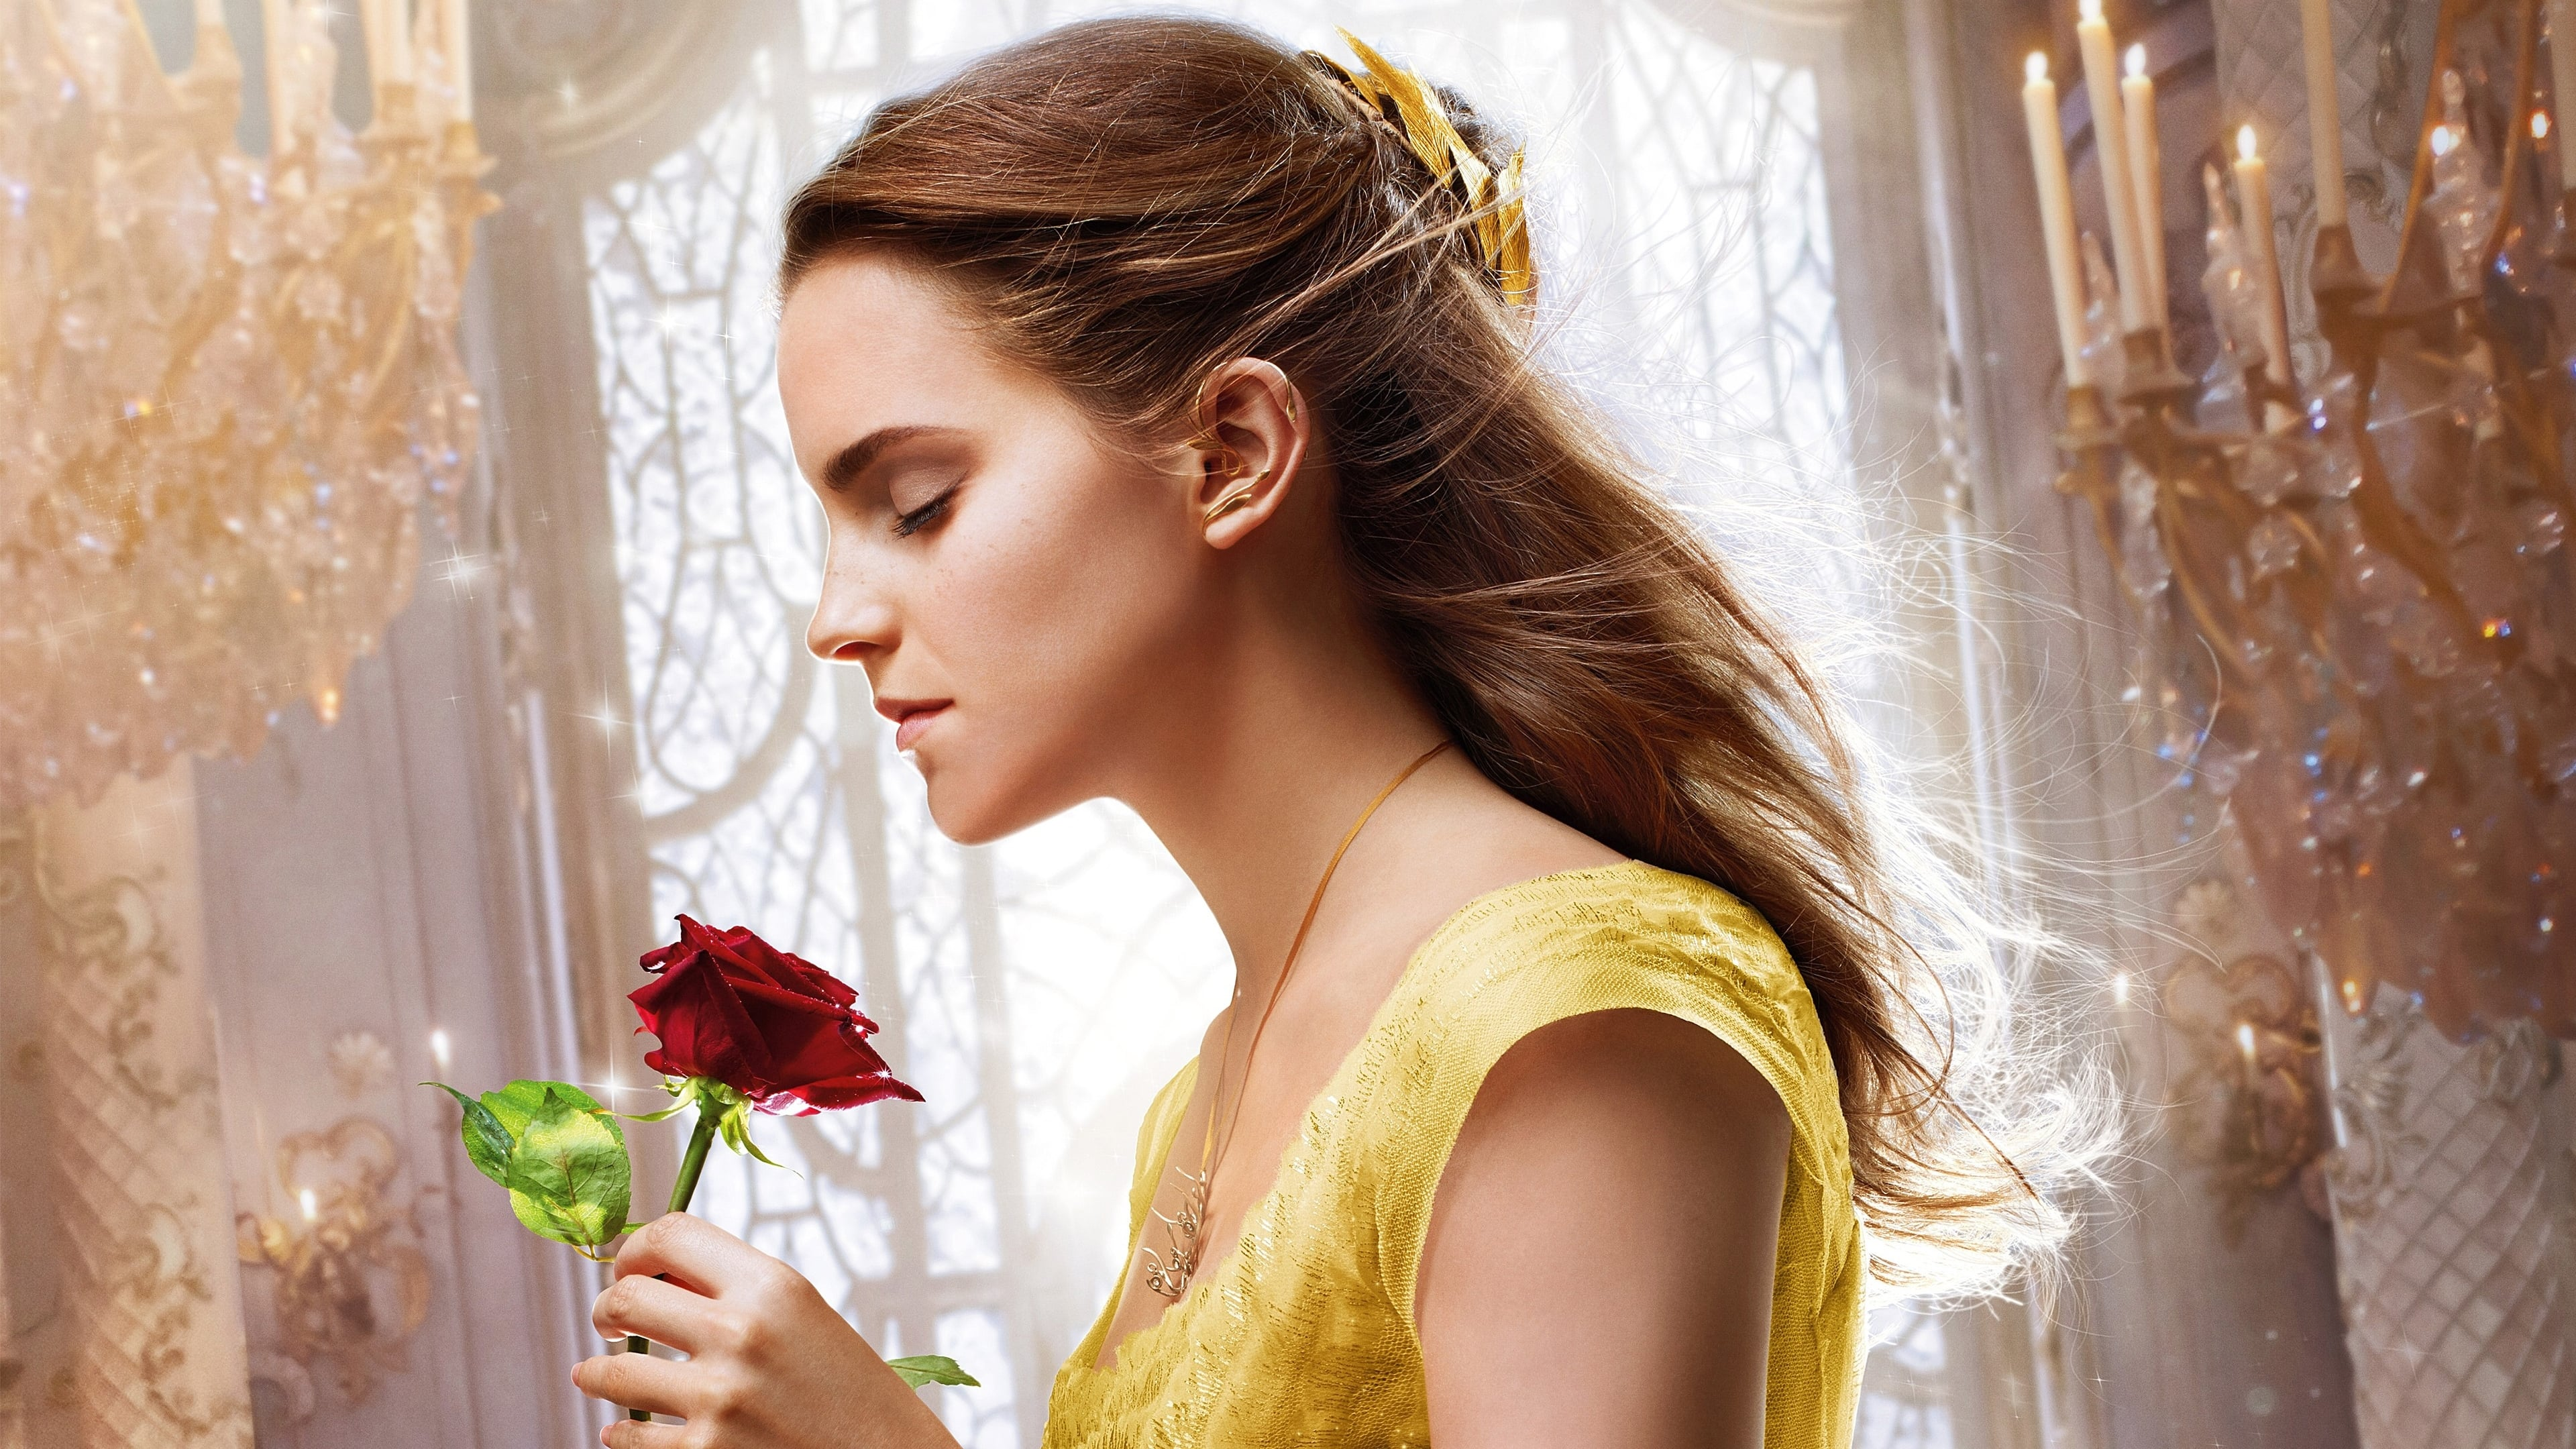 Full Free Watch Beauty and the Beast 2017 Movie